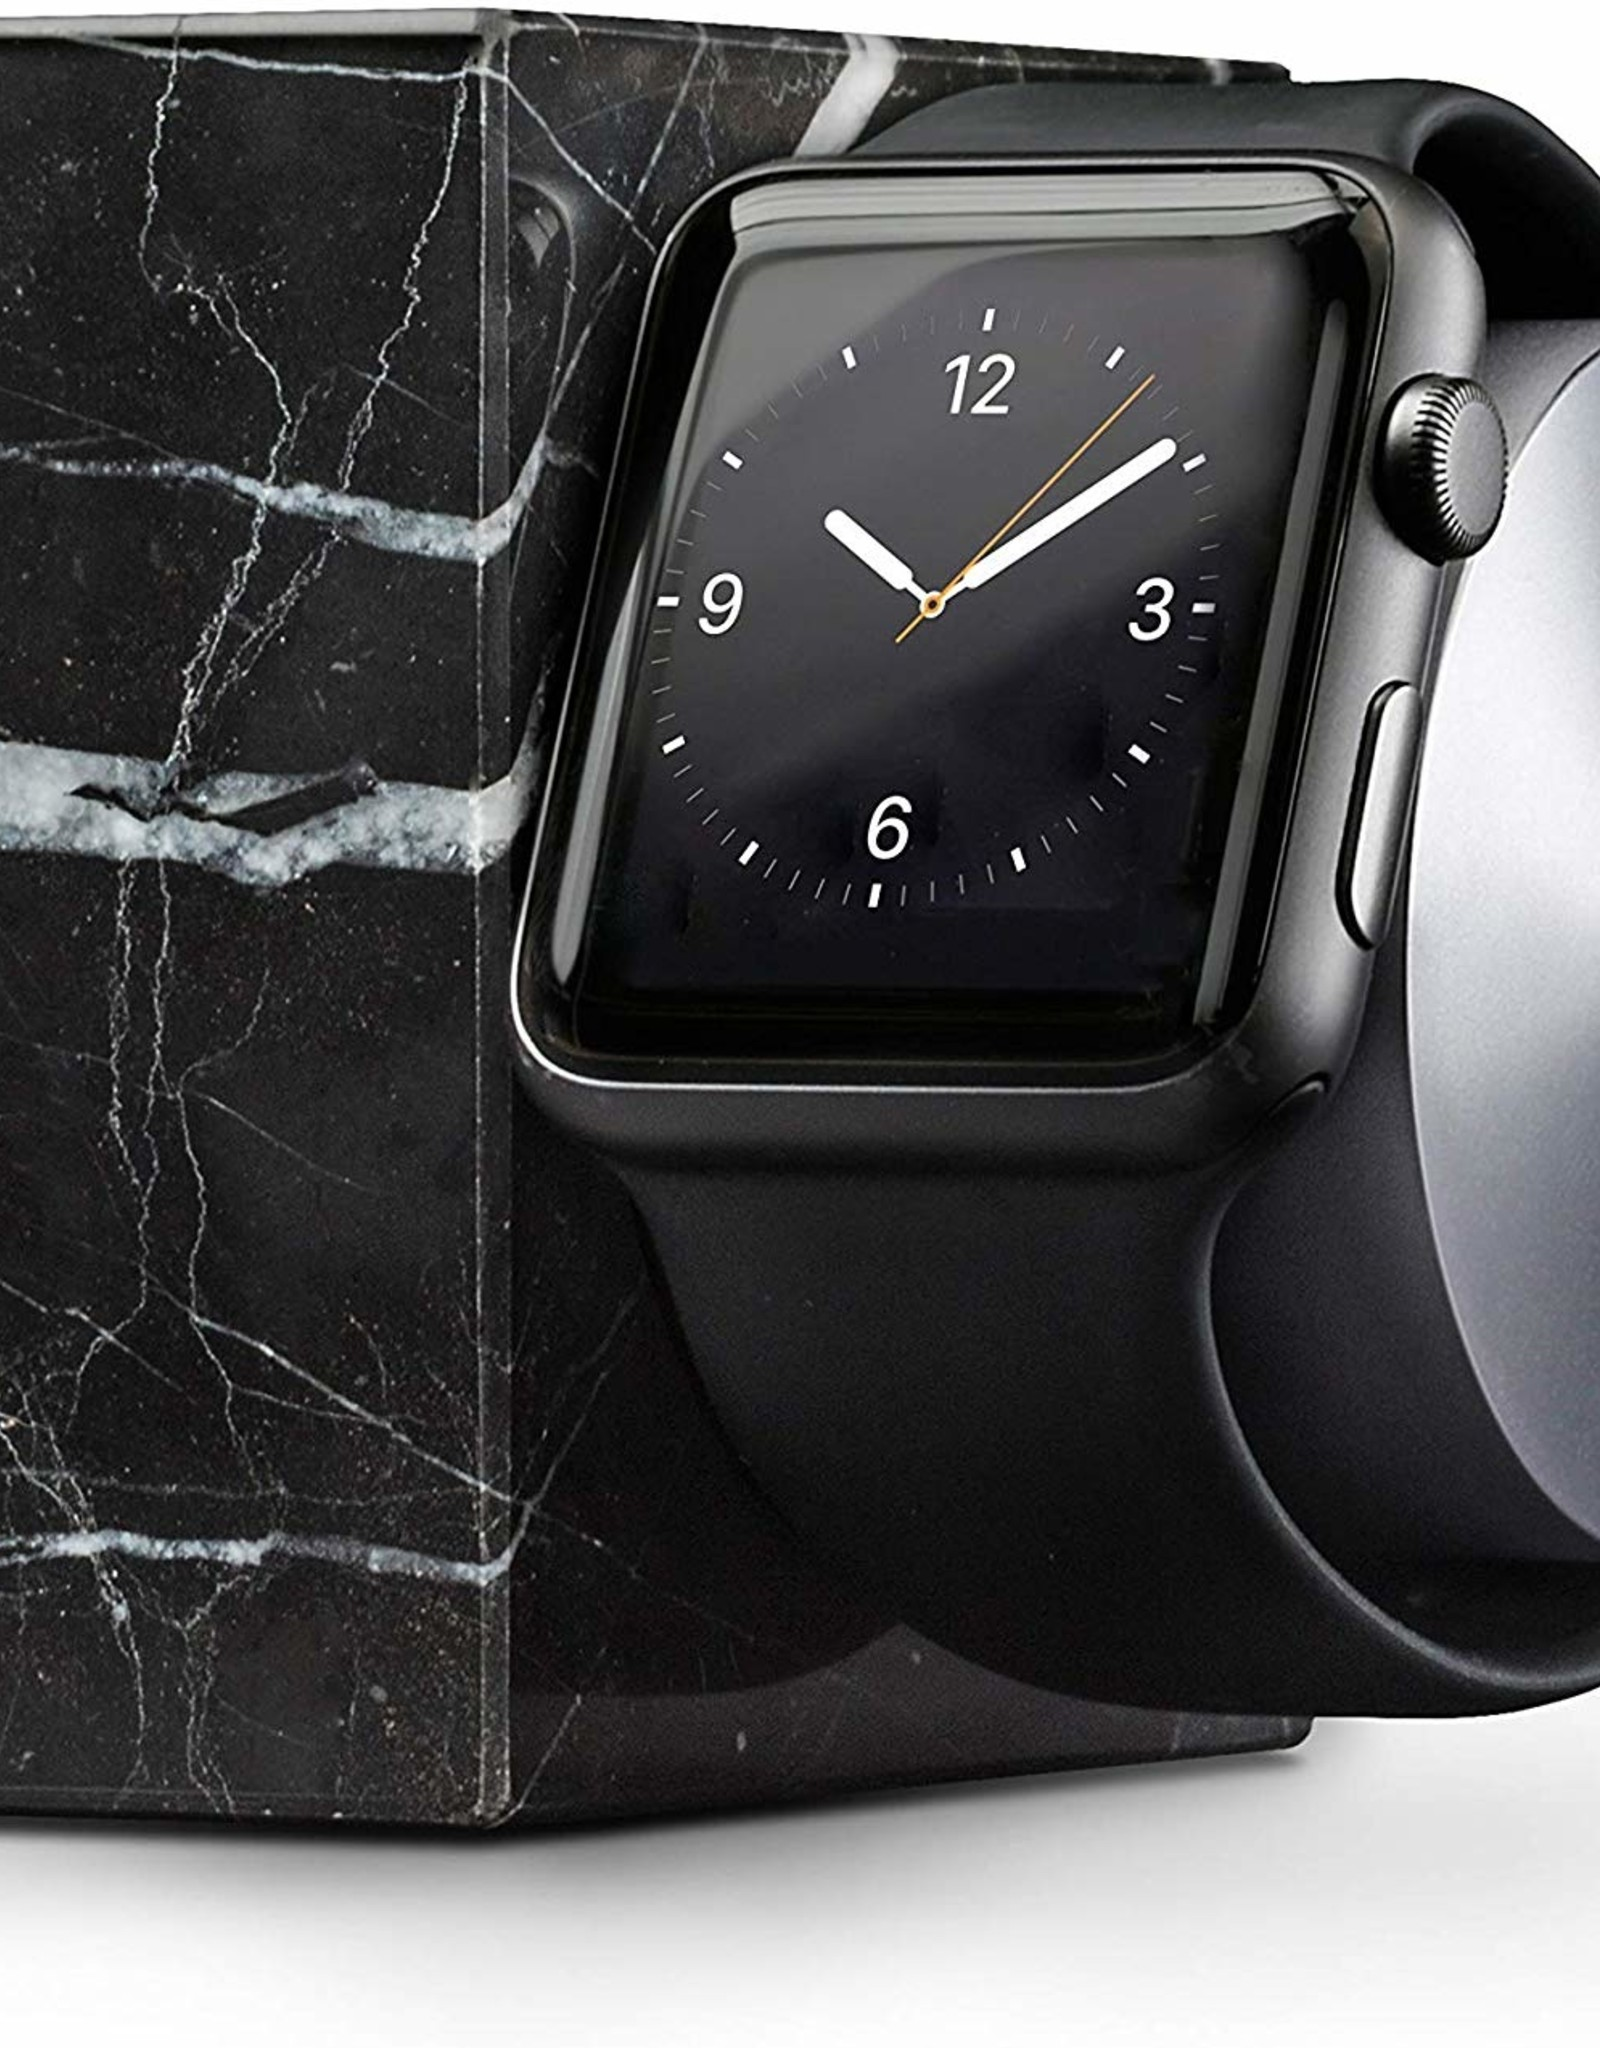 Native Union Native Union | Marble Apple Watch Dock Black | DOCK-AW-MB-BLK